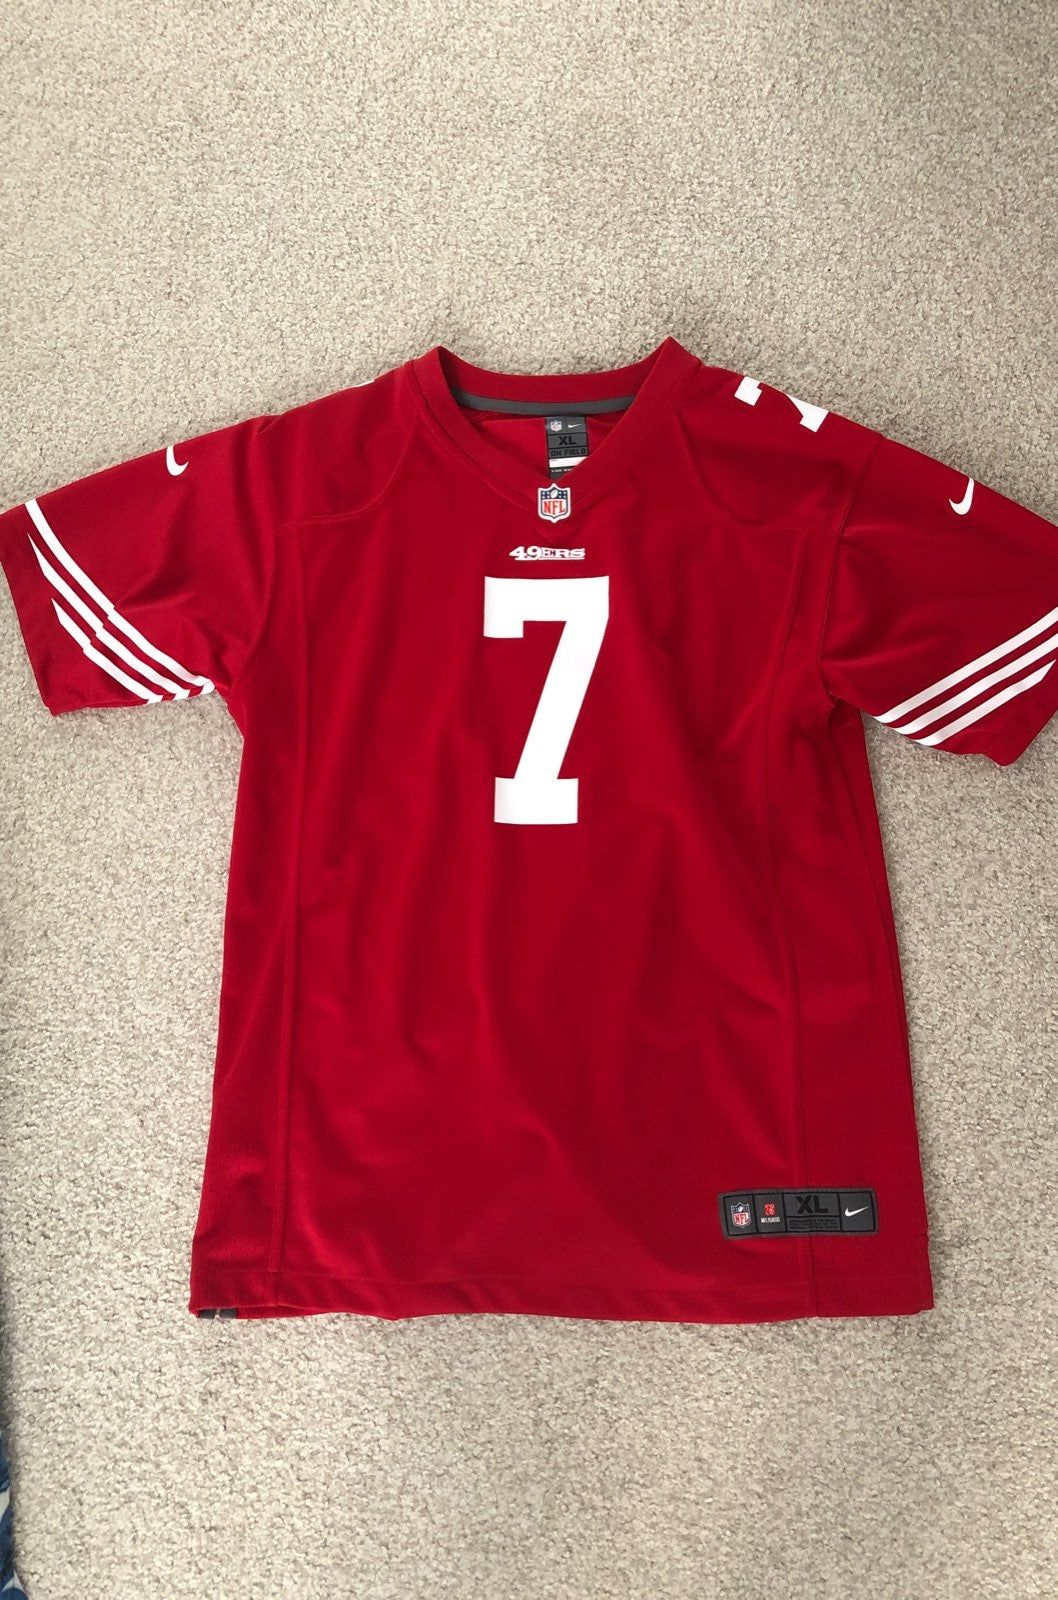 youth 49ers jersey